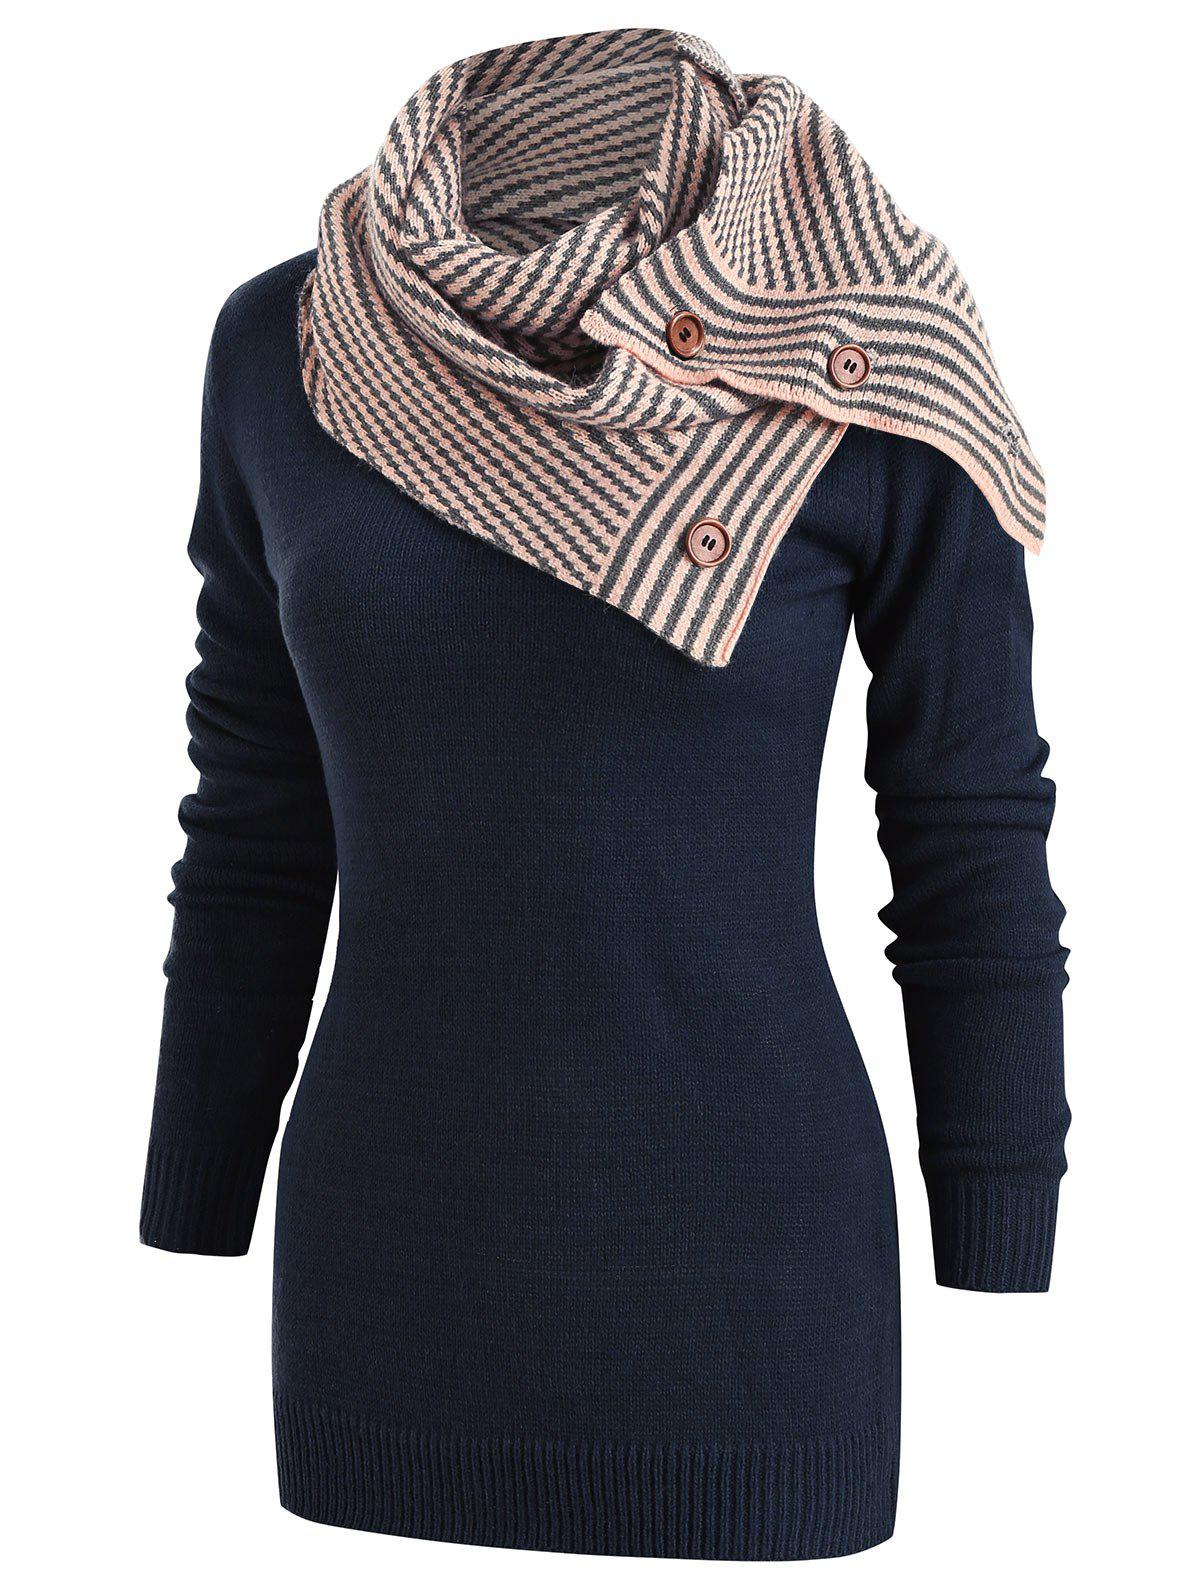 New Long Sleeve Sweater with Striped Scarf